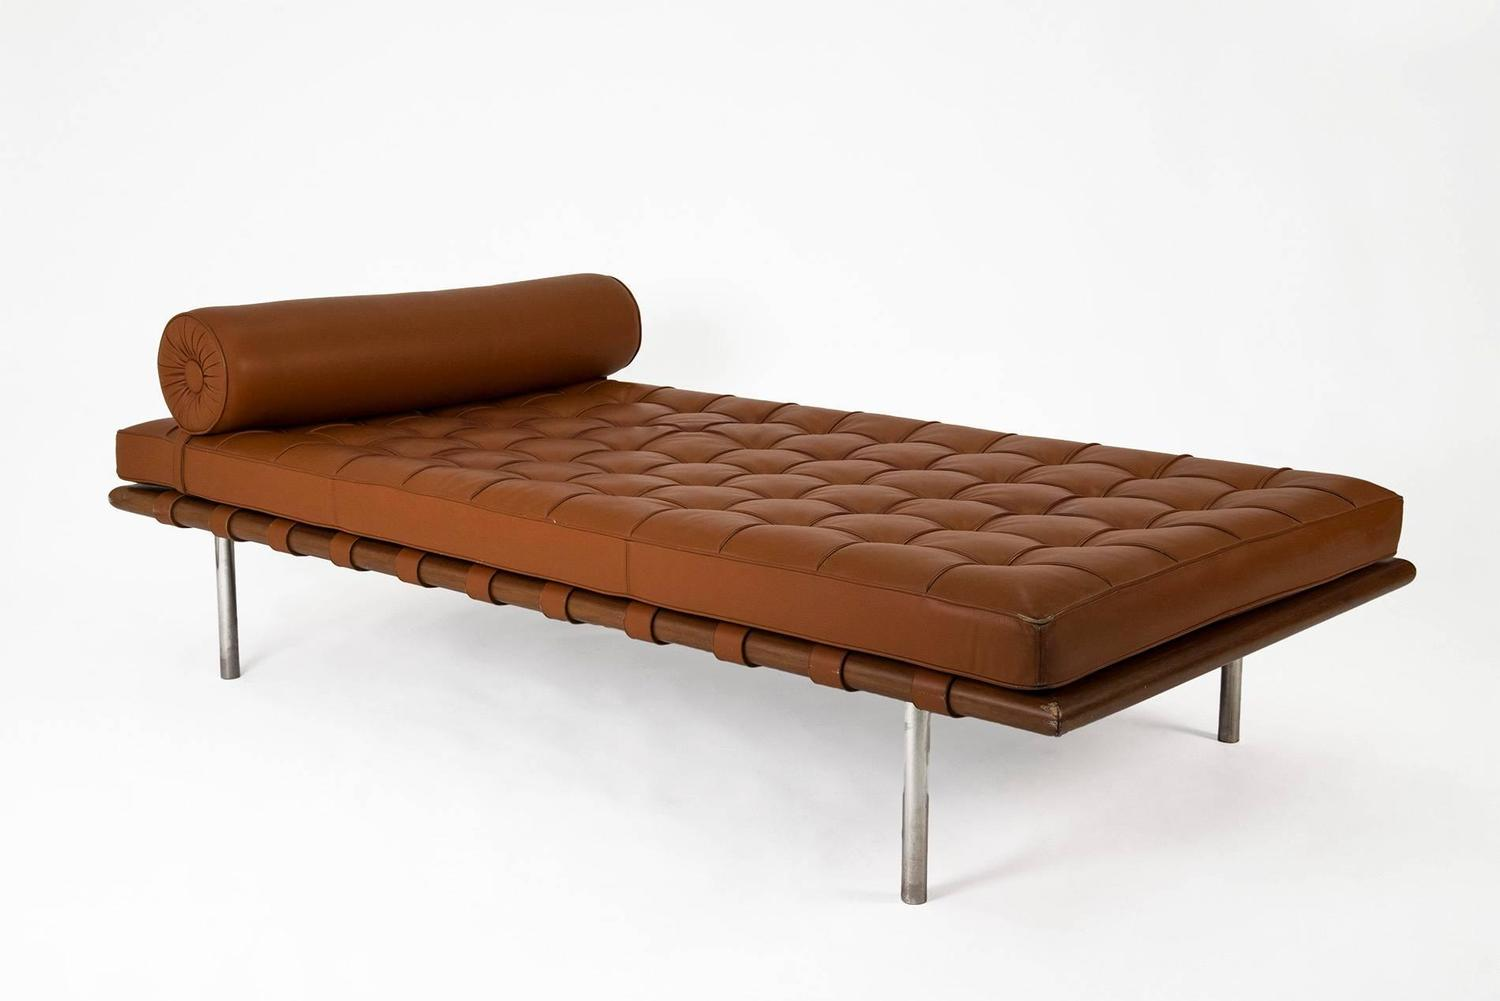 barcelona daybed by mies van der rohe for knoll 1953. Black Bedroom Furniture Sets. Home Design Ideas